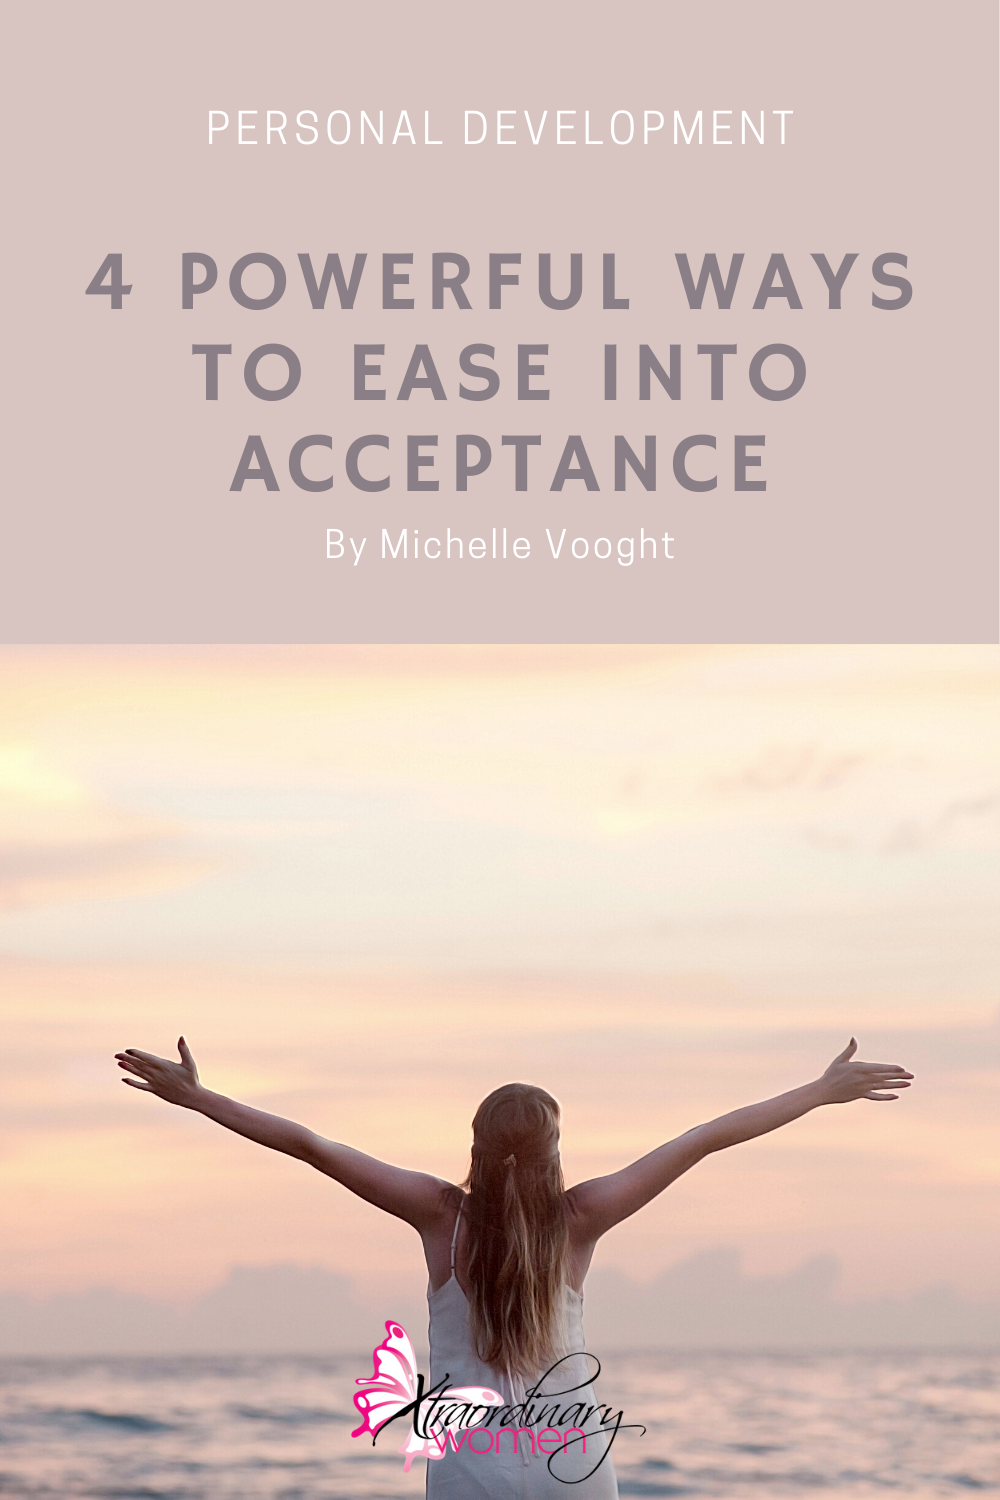 4 Powerful Ways To Ease Into Acceptance By Michelle Vooght